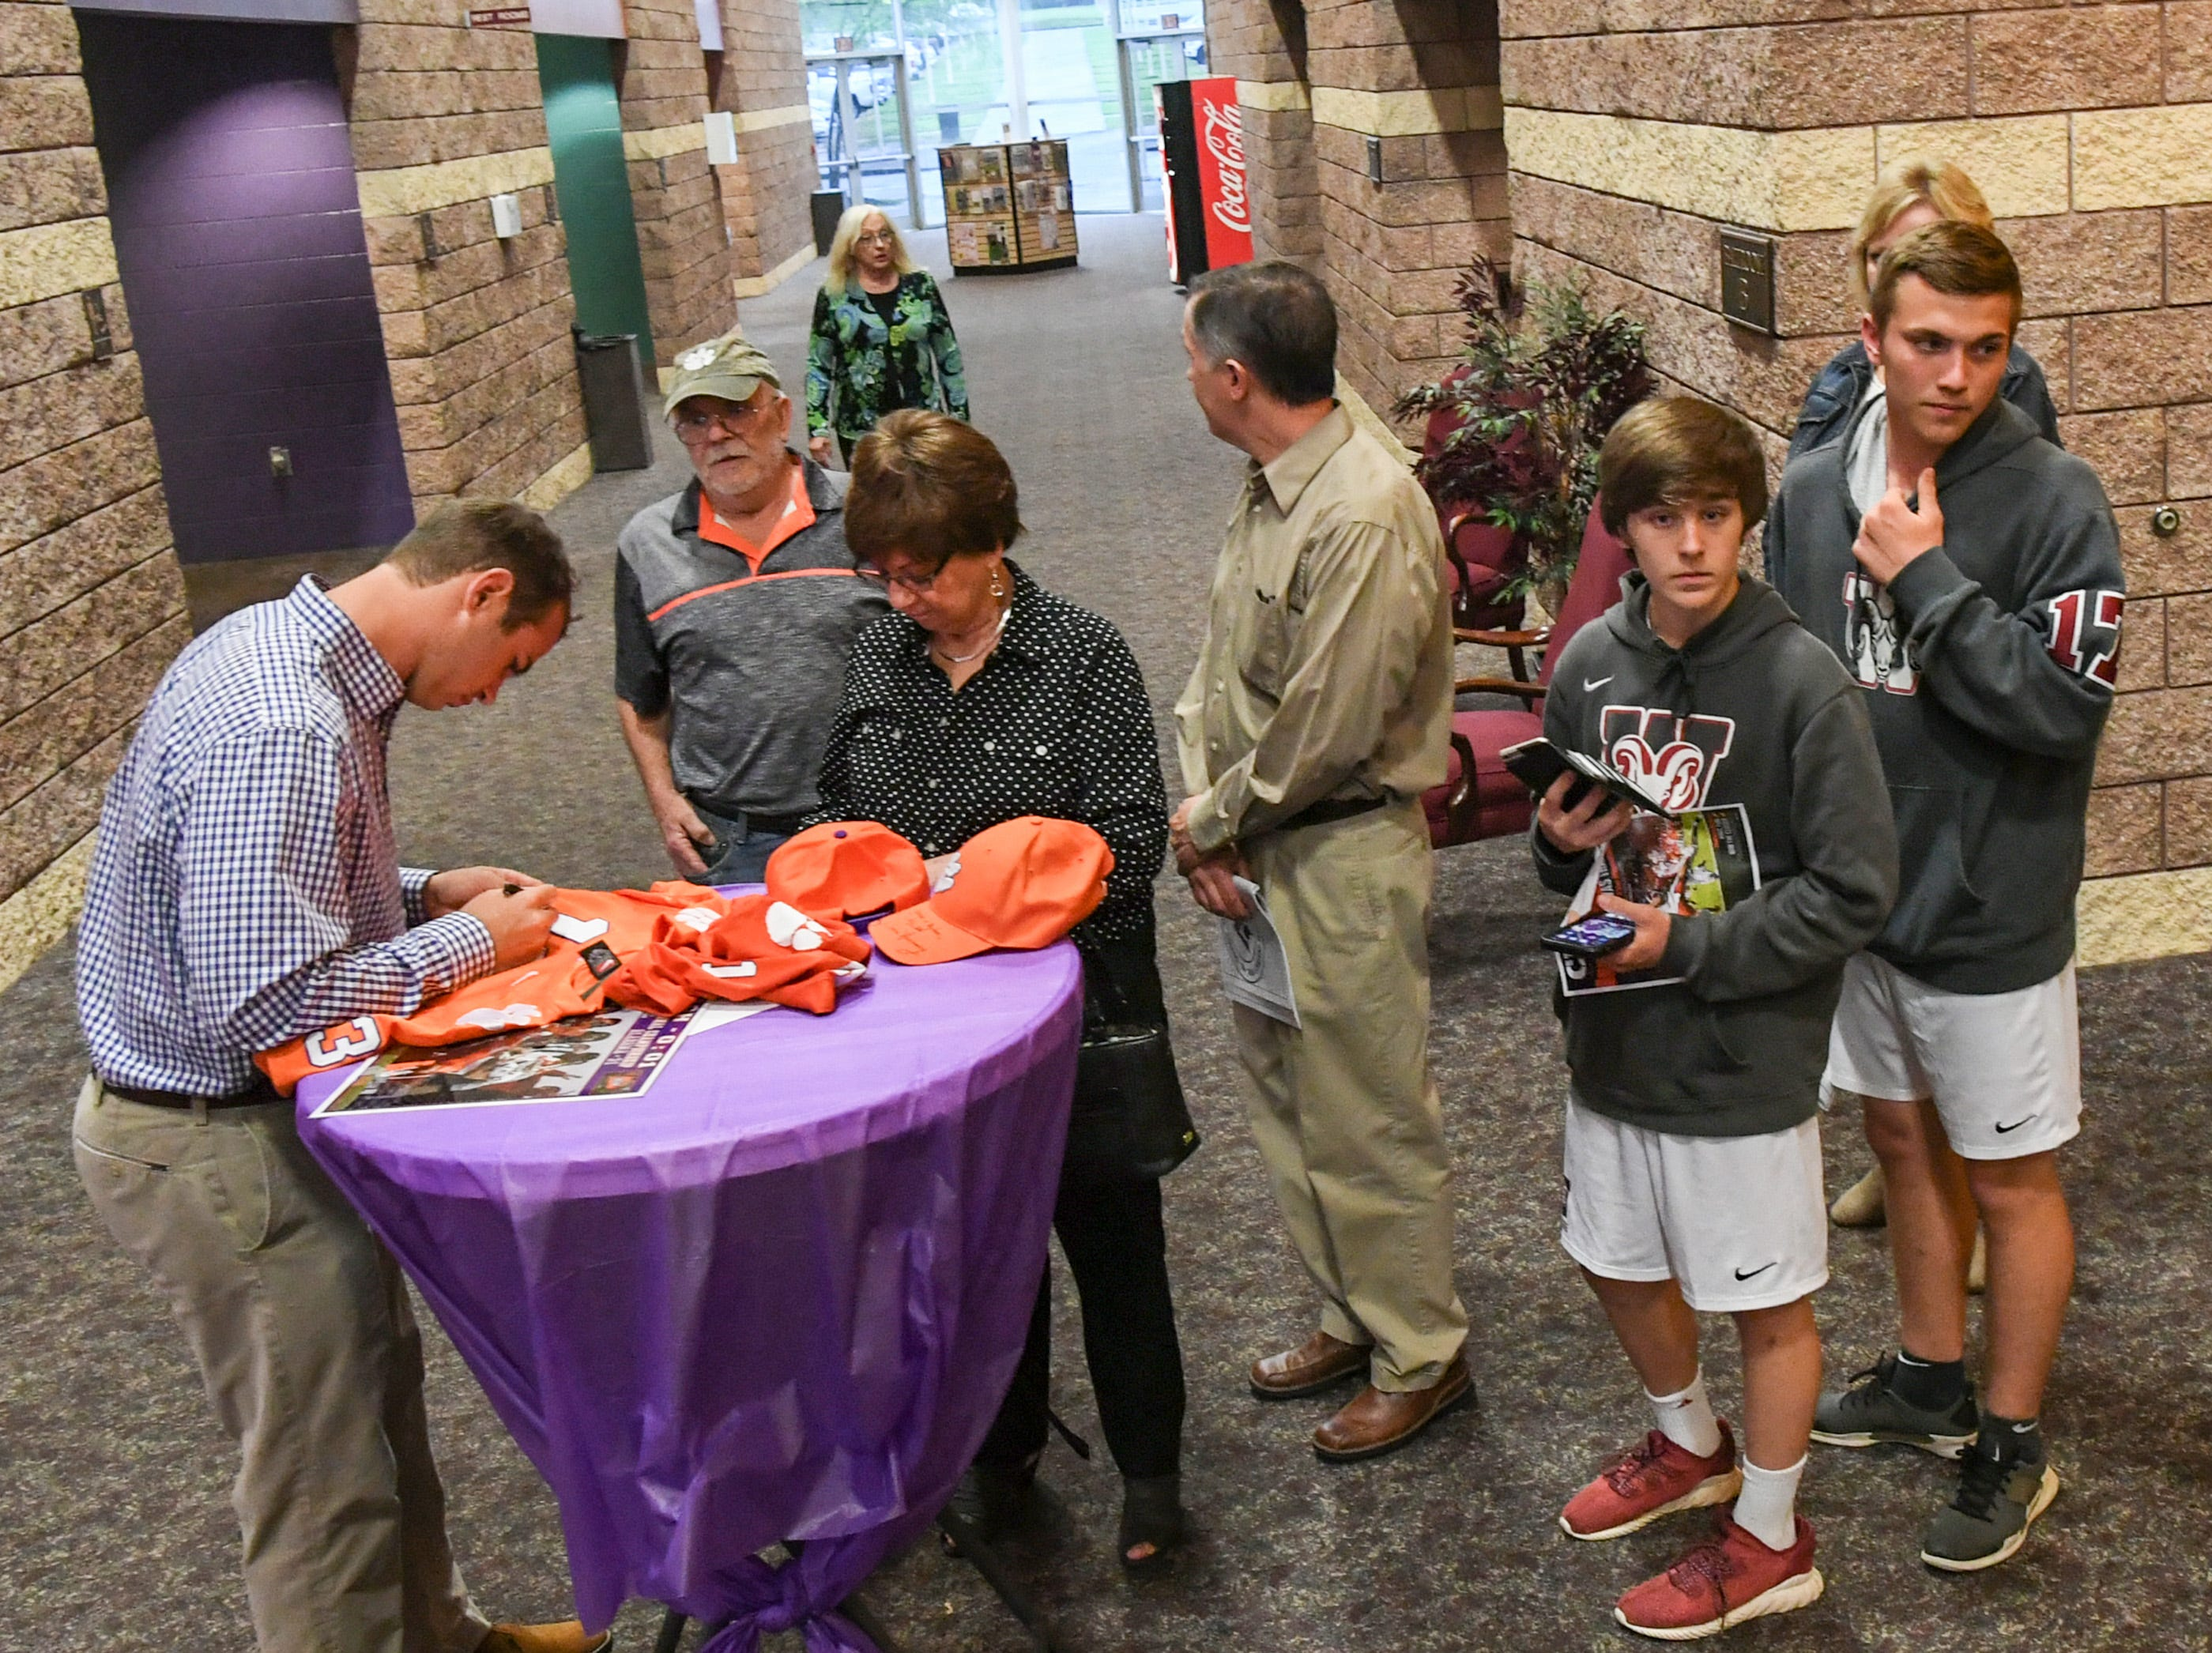 Hunter Renfrow, left, former Clemson football star receiver and two-time national champion, signs autographs for fans before the Anderson Area Touchdown Club Annual Awards Banquet at the Anderson County Civic Center Monday, April 8th, 2019.